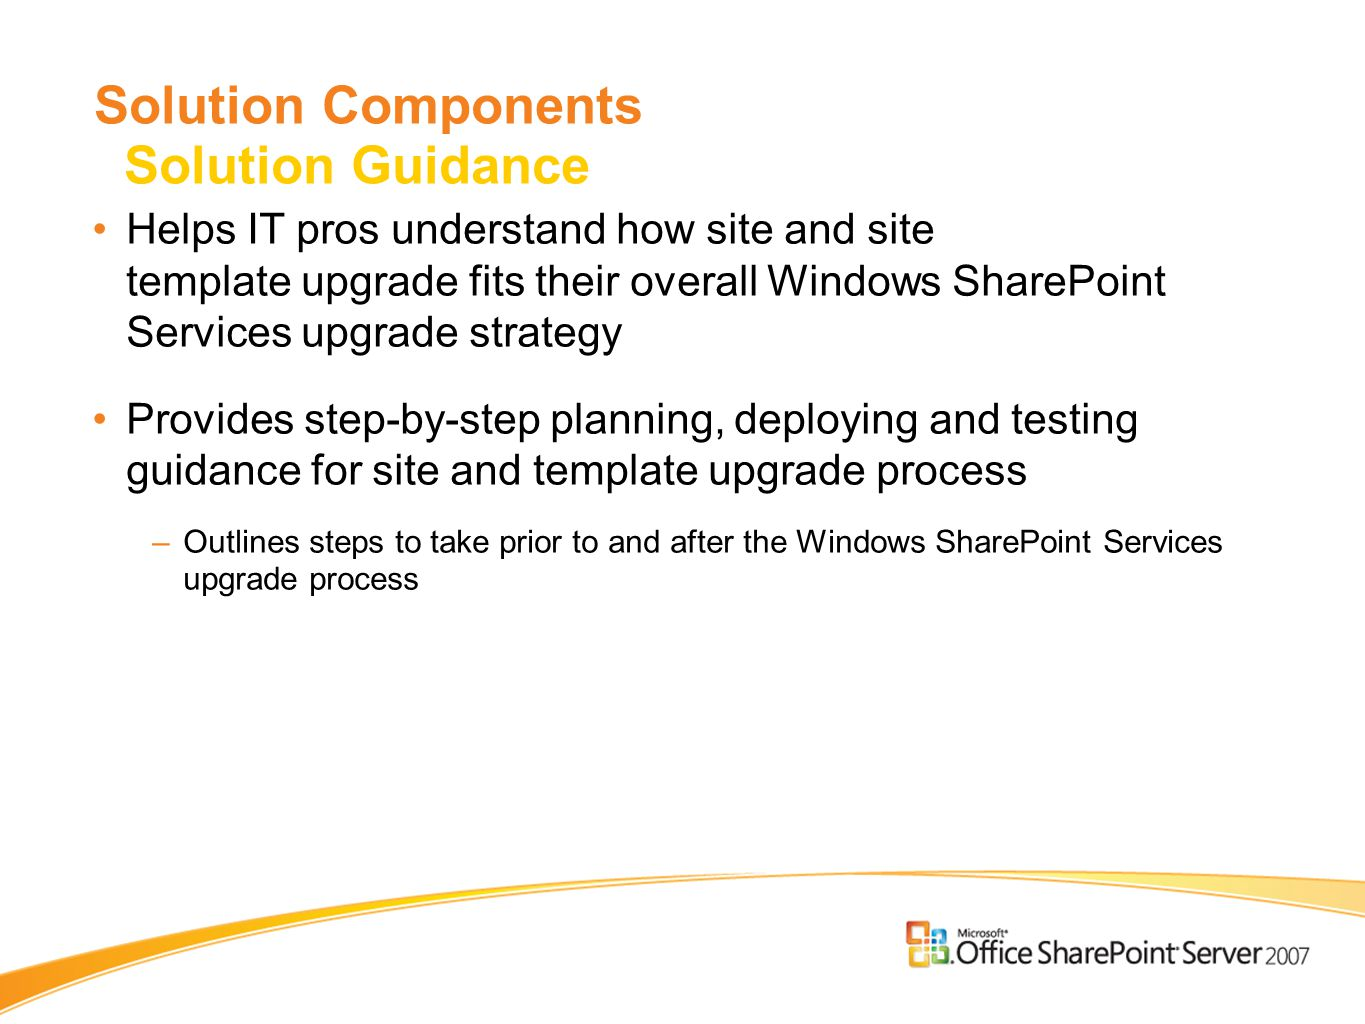 Helps IT pros understand how site and site template upgrade fits their overall Windows SharePoint Services upgrade strategy Provides step-by-step planning, deploying and testing guidance for site and template upgrade process –Outlines steps to take prior to and after the Windows SharePoint Services upgrade process